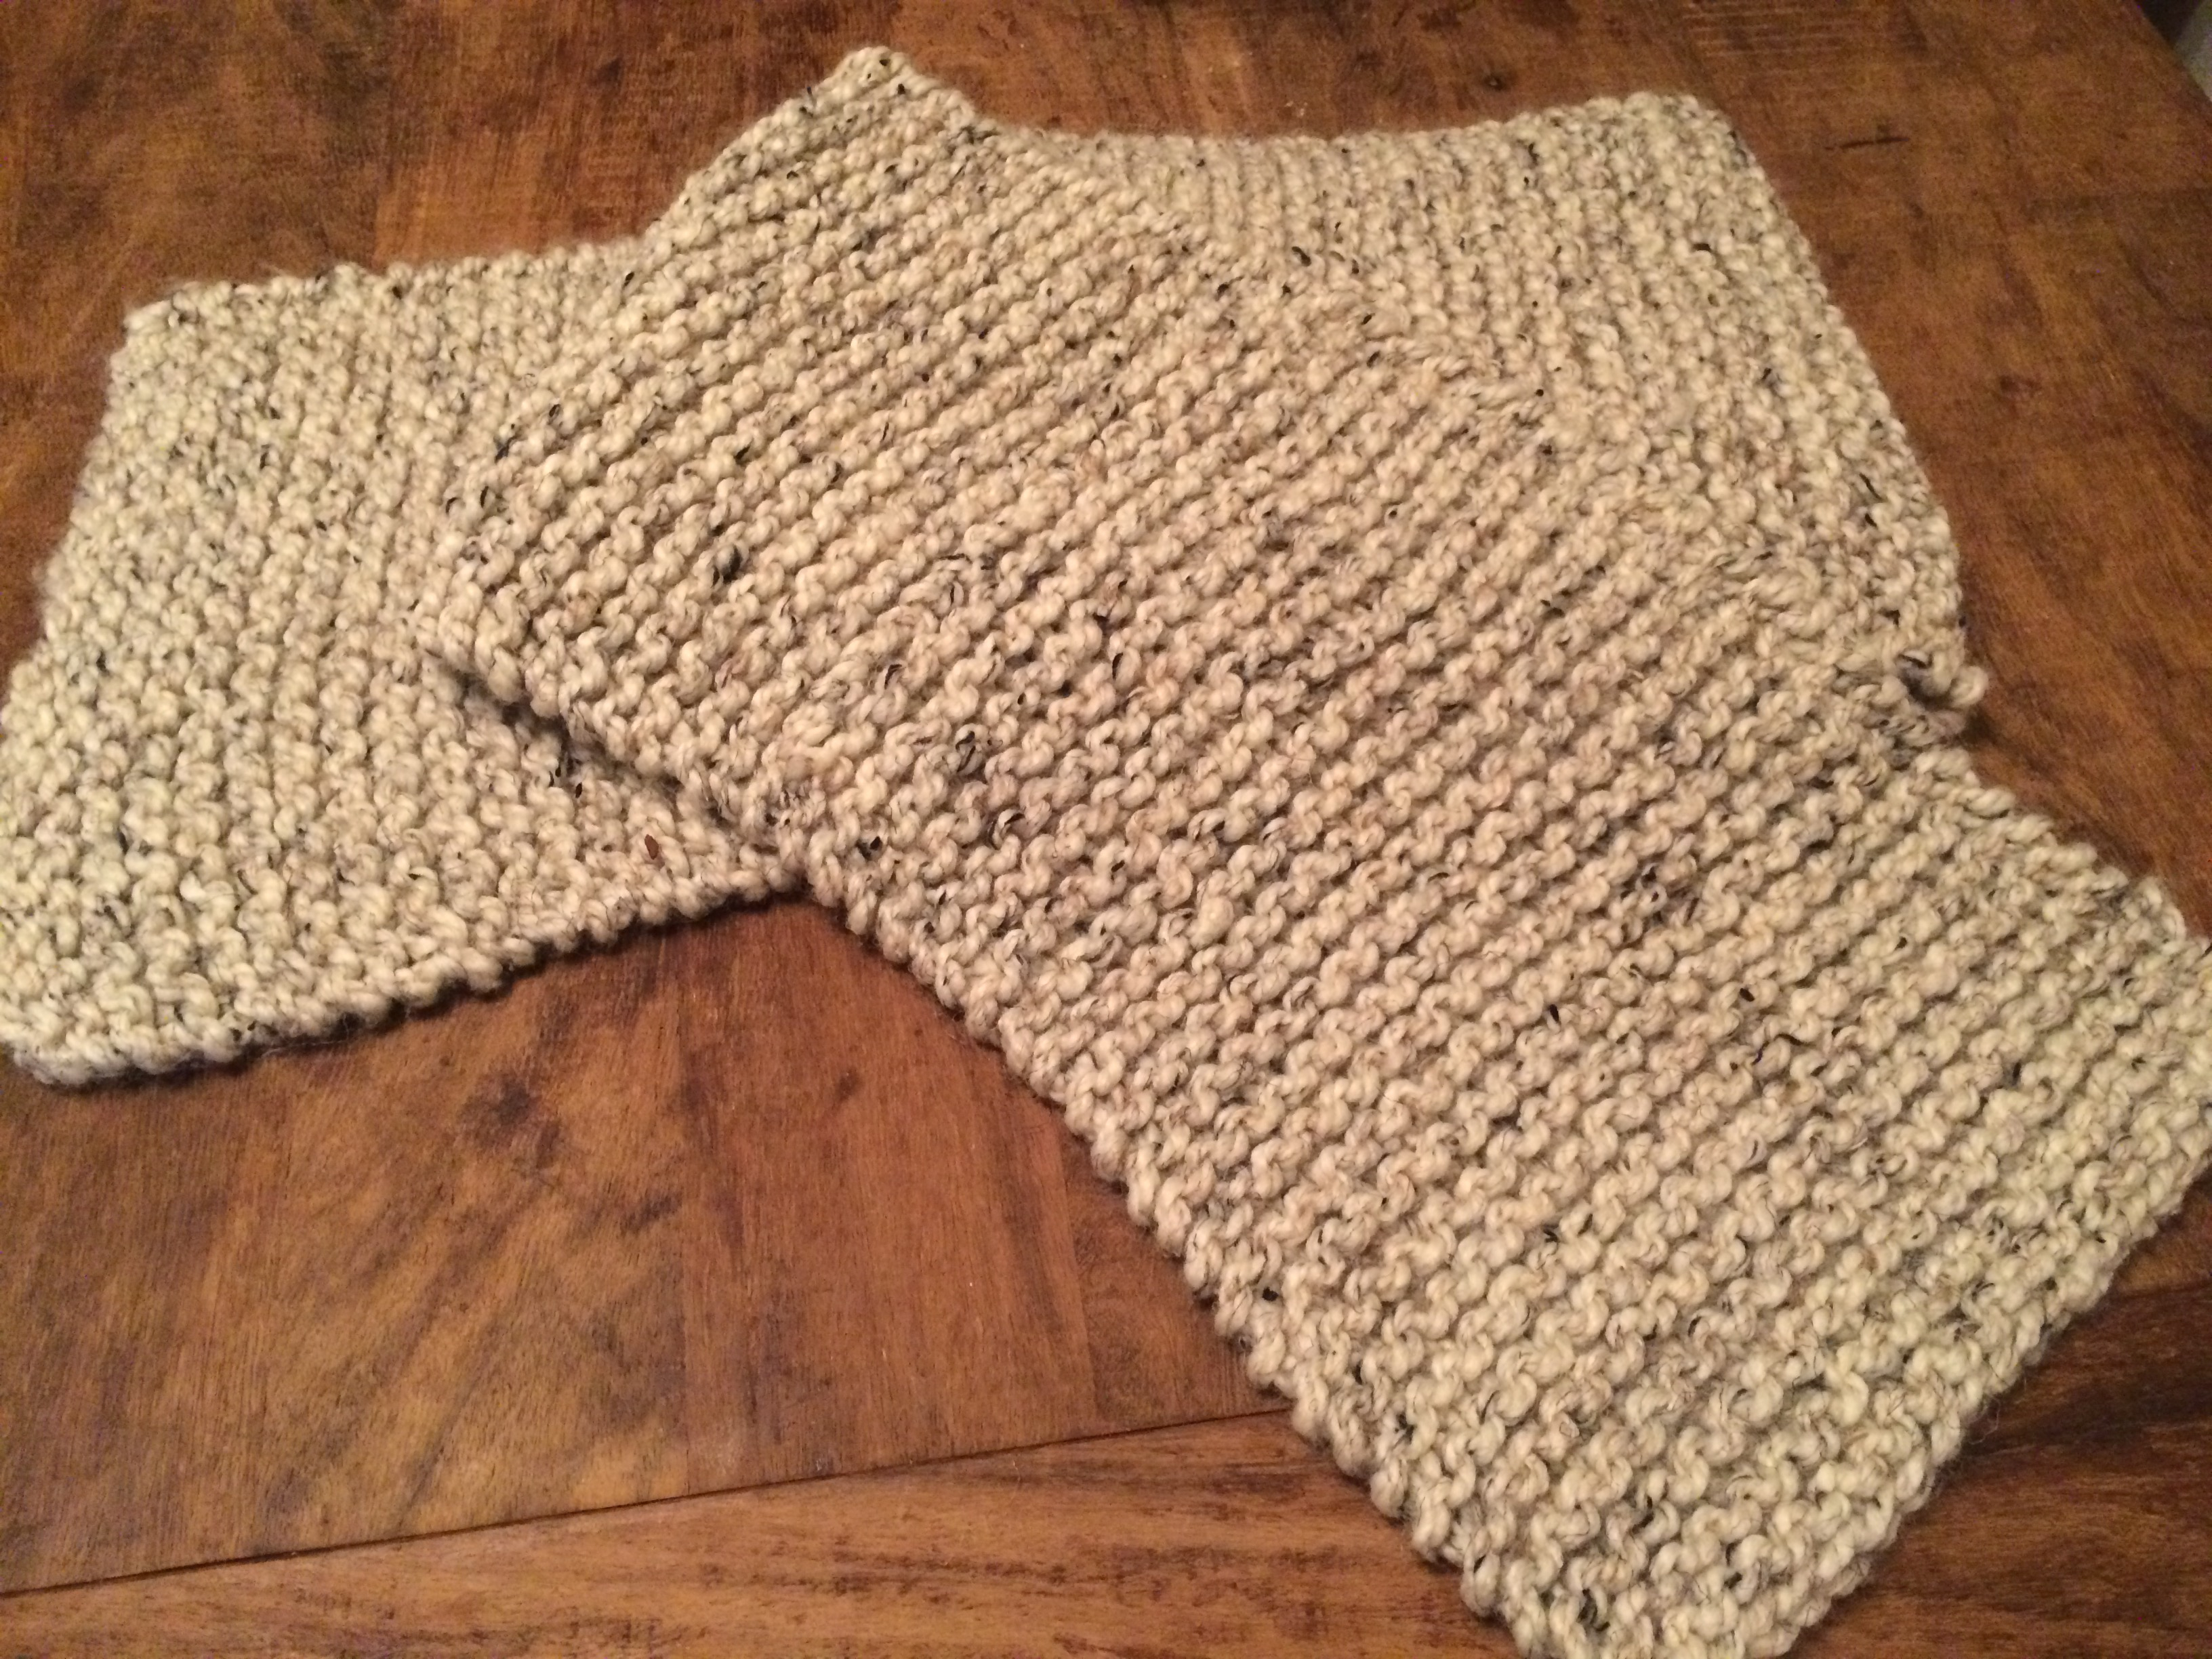 Double Knitting Tutorial Scarfs How To Knit A Scarf For Beginners Sheep And Stitch